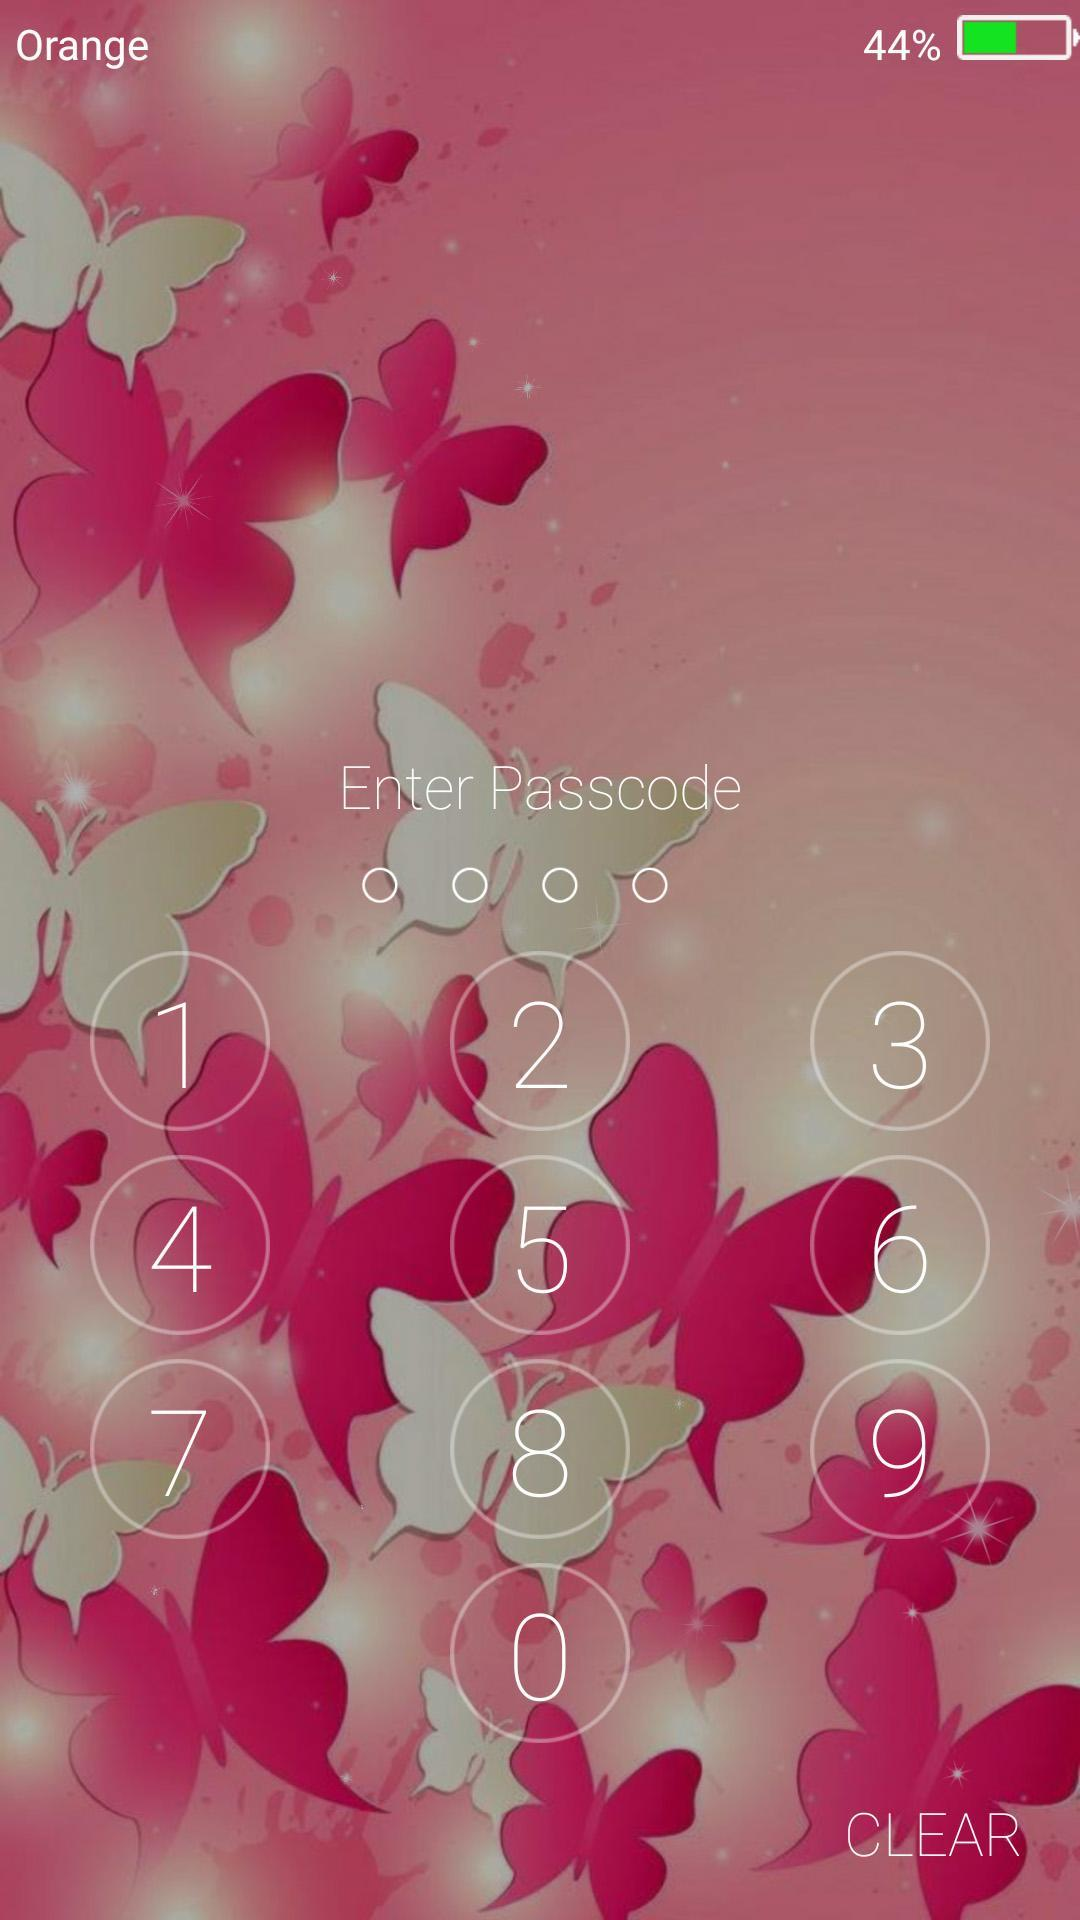 Butterfly Live Wallpaper Lock Screen For Android Apk